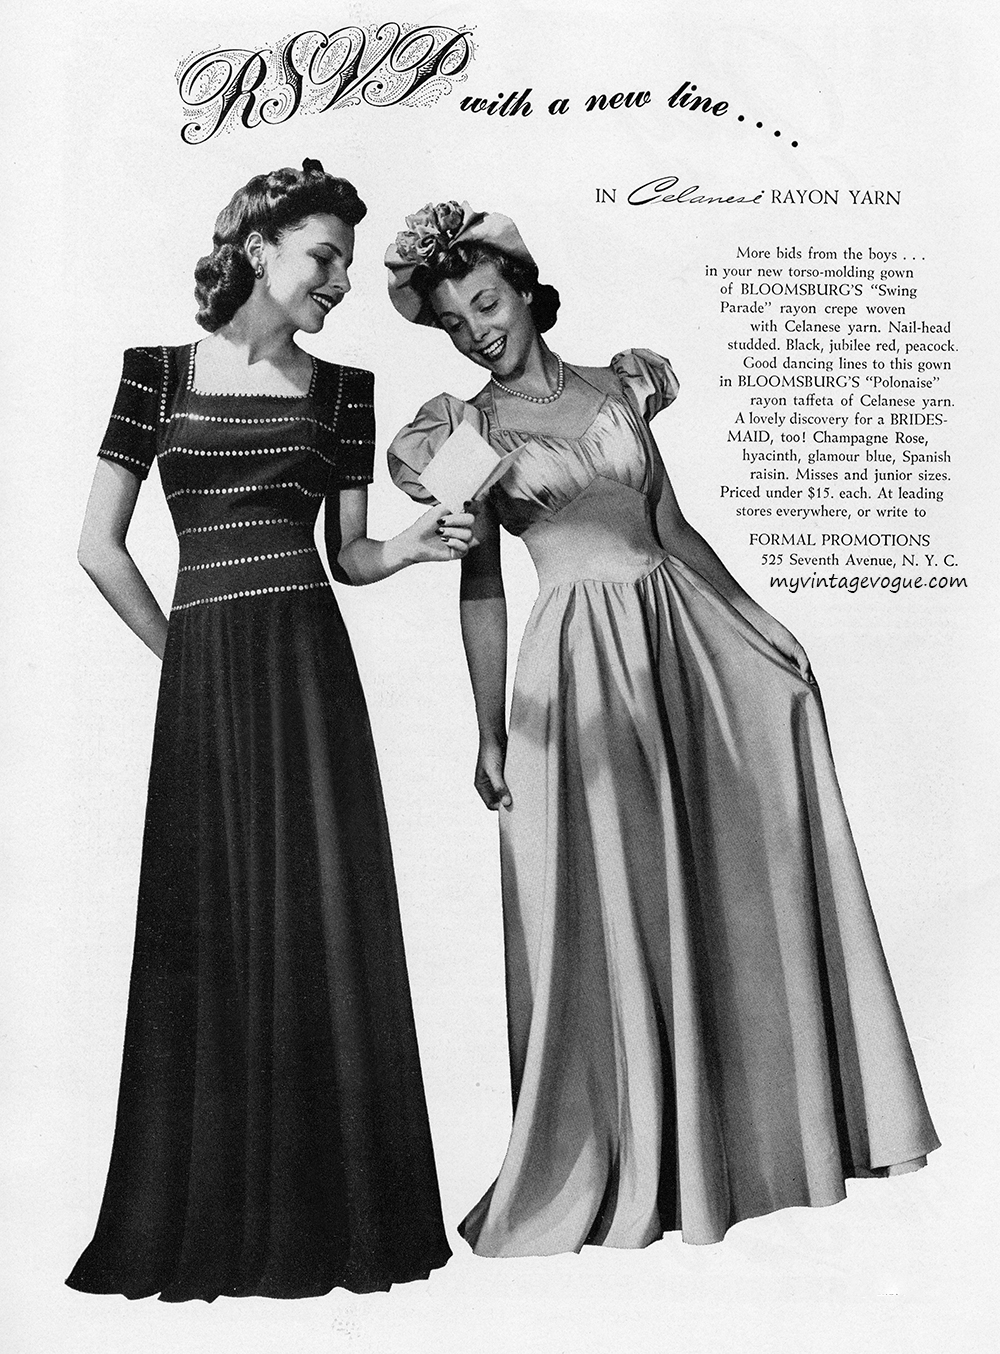 MyVintageVogue Decades  1940s  Formal Promotions 1940